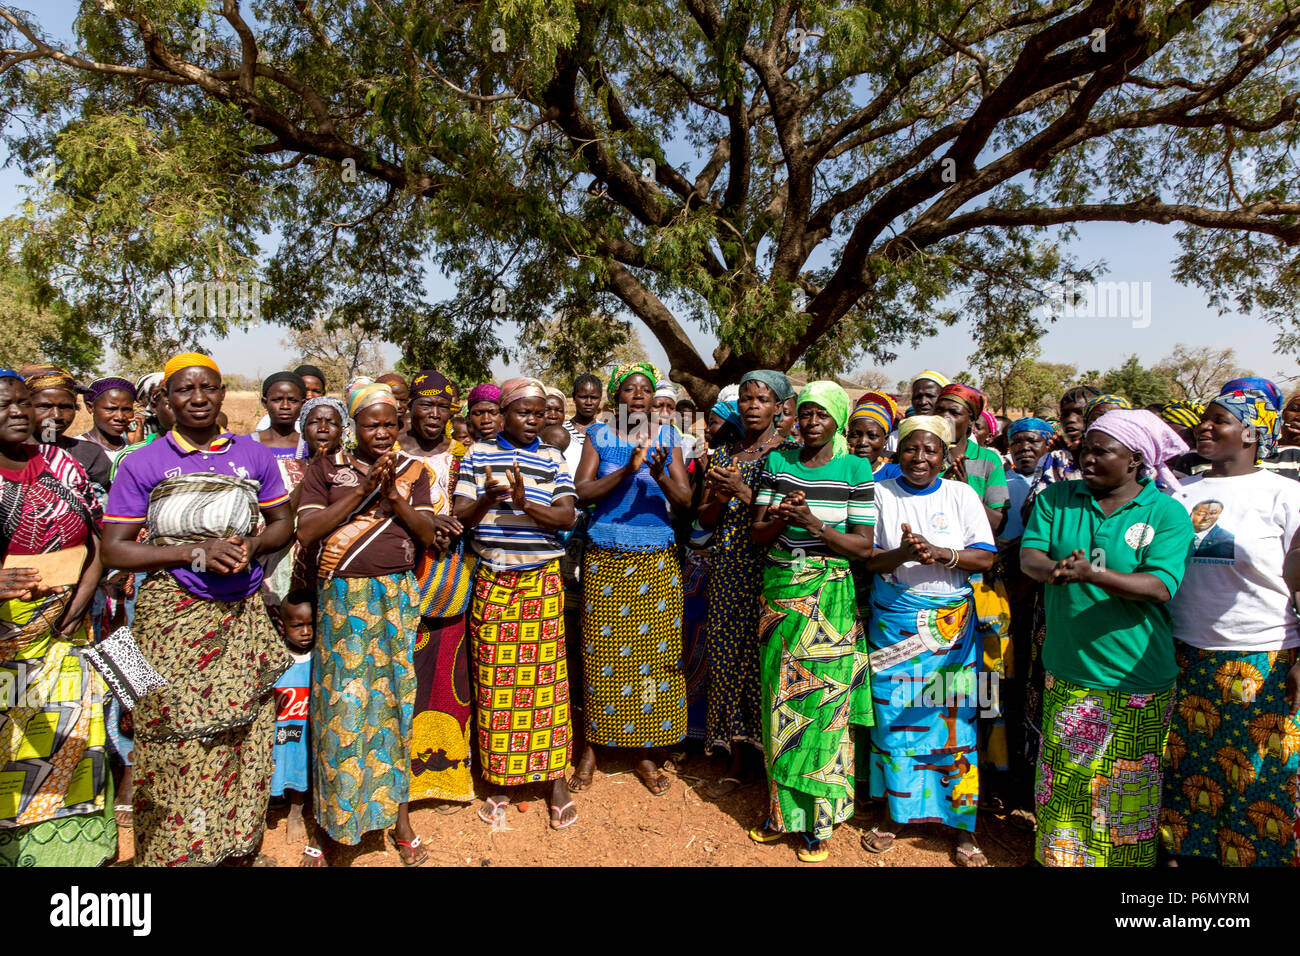 Members of a women's microfinance cooperative welcoming a visitor in Northern Togo. - Stock Image